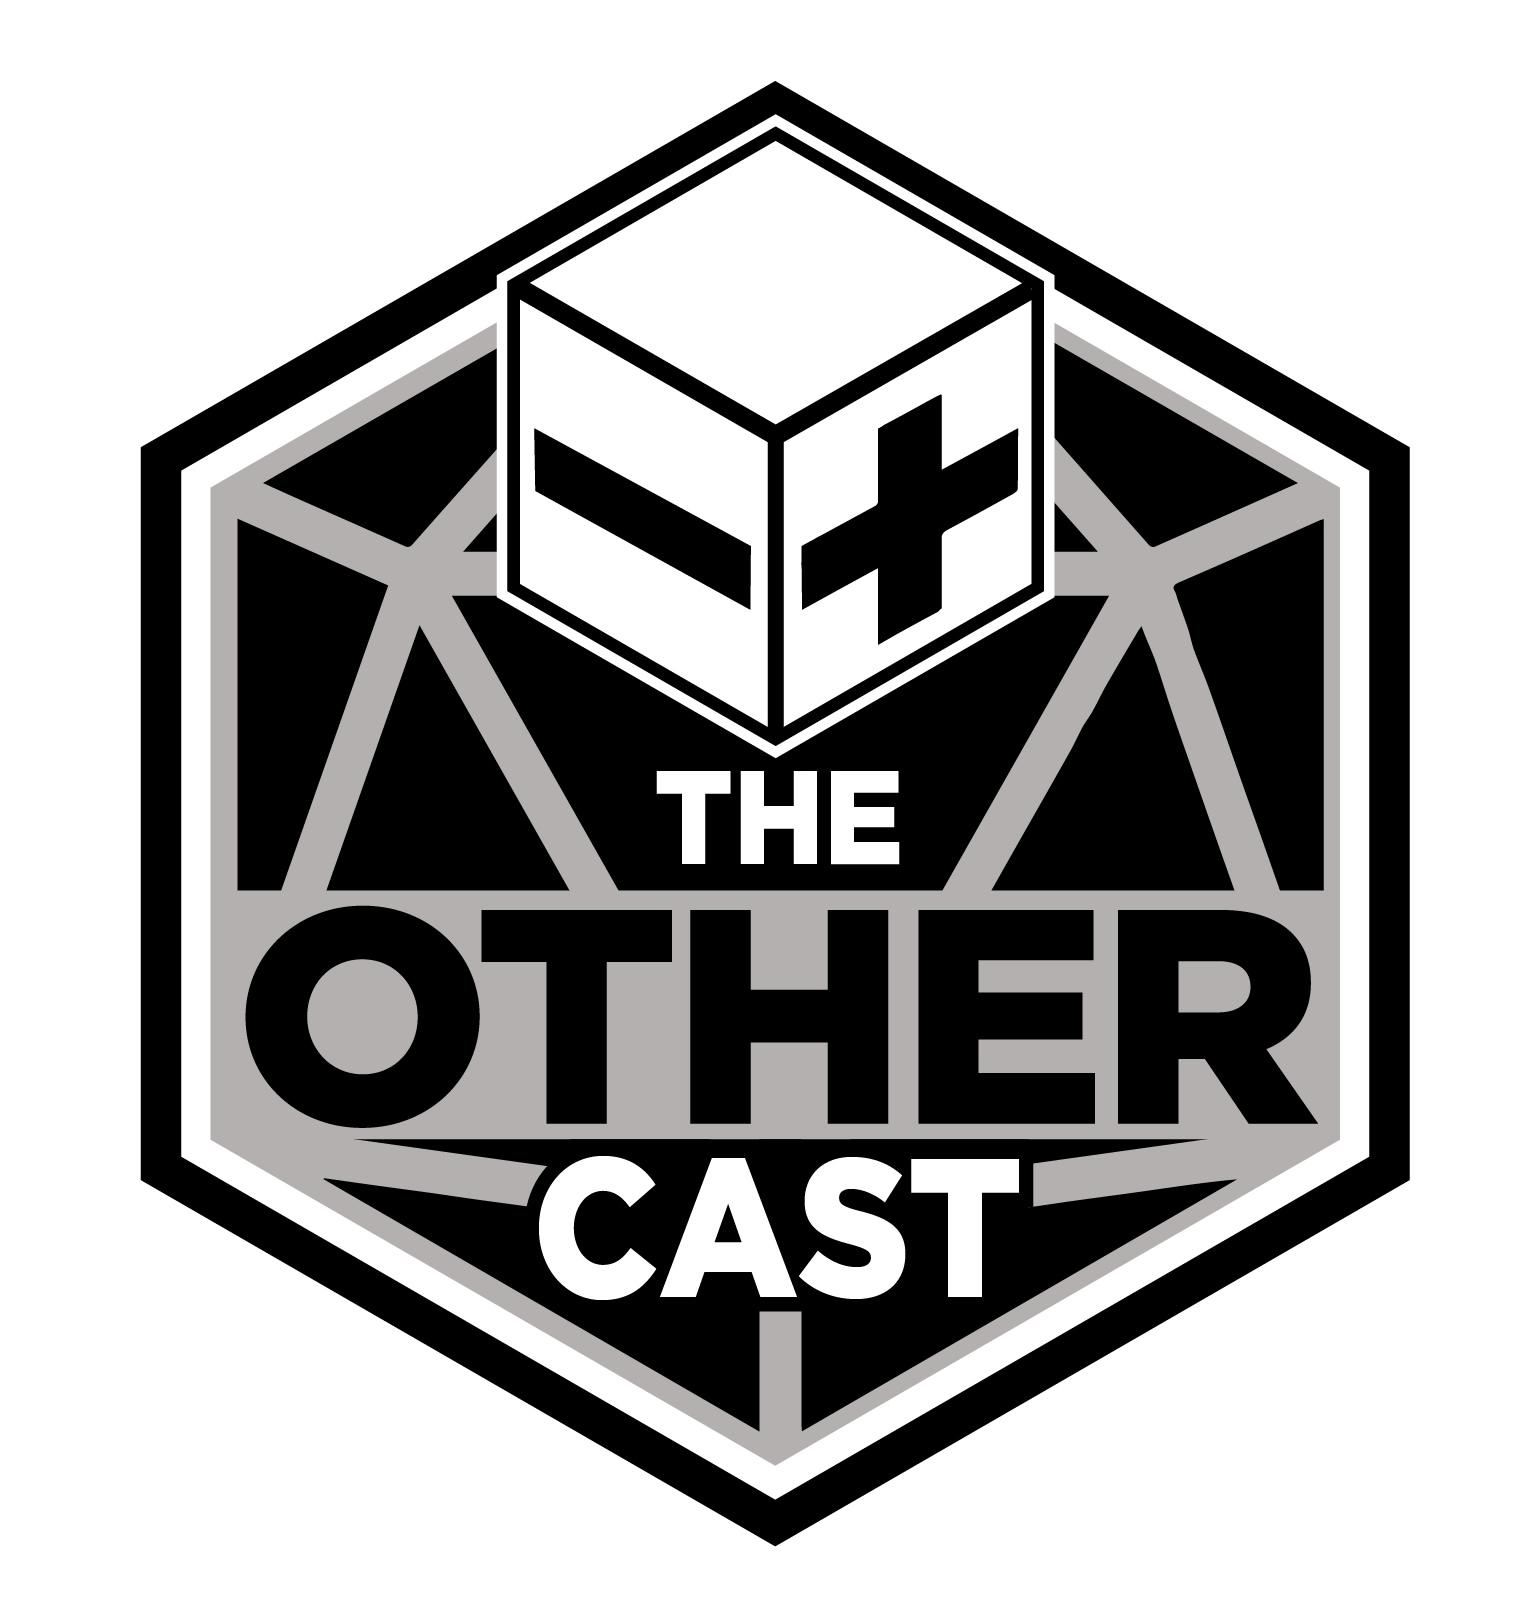 TheOtherCast